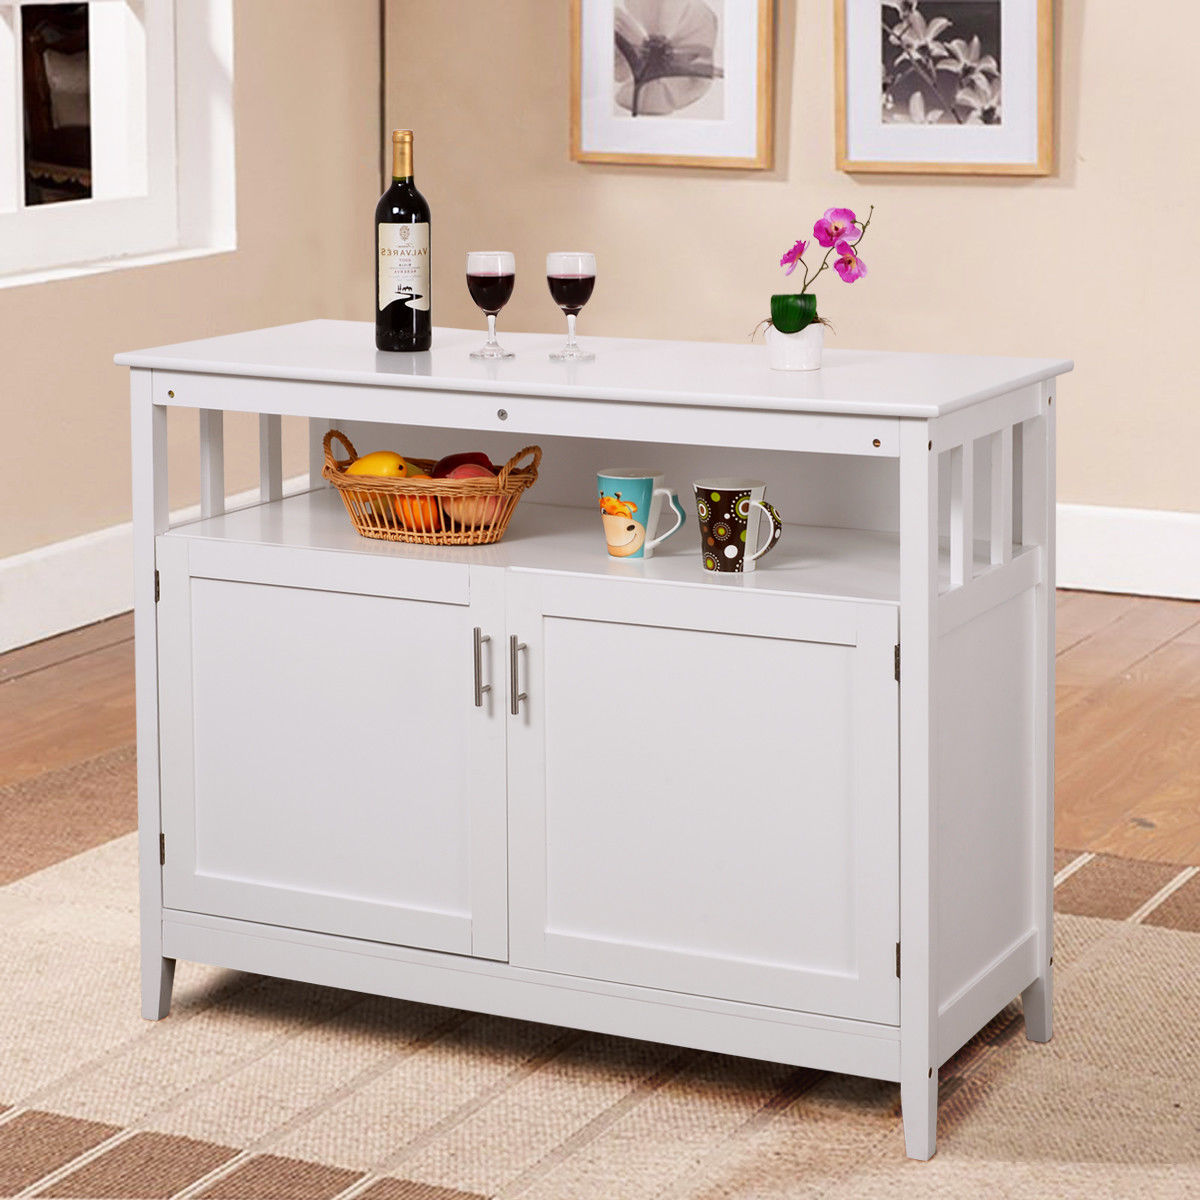 Costway Modern Kitchen Storage Cabinet Buffet Server